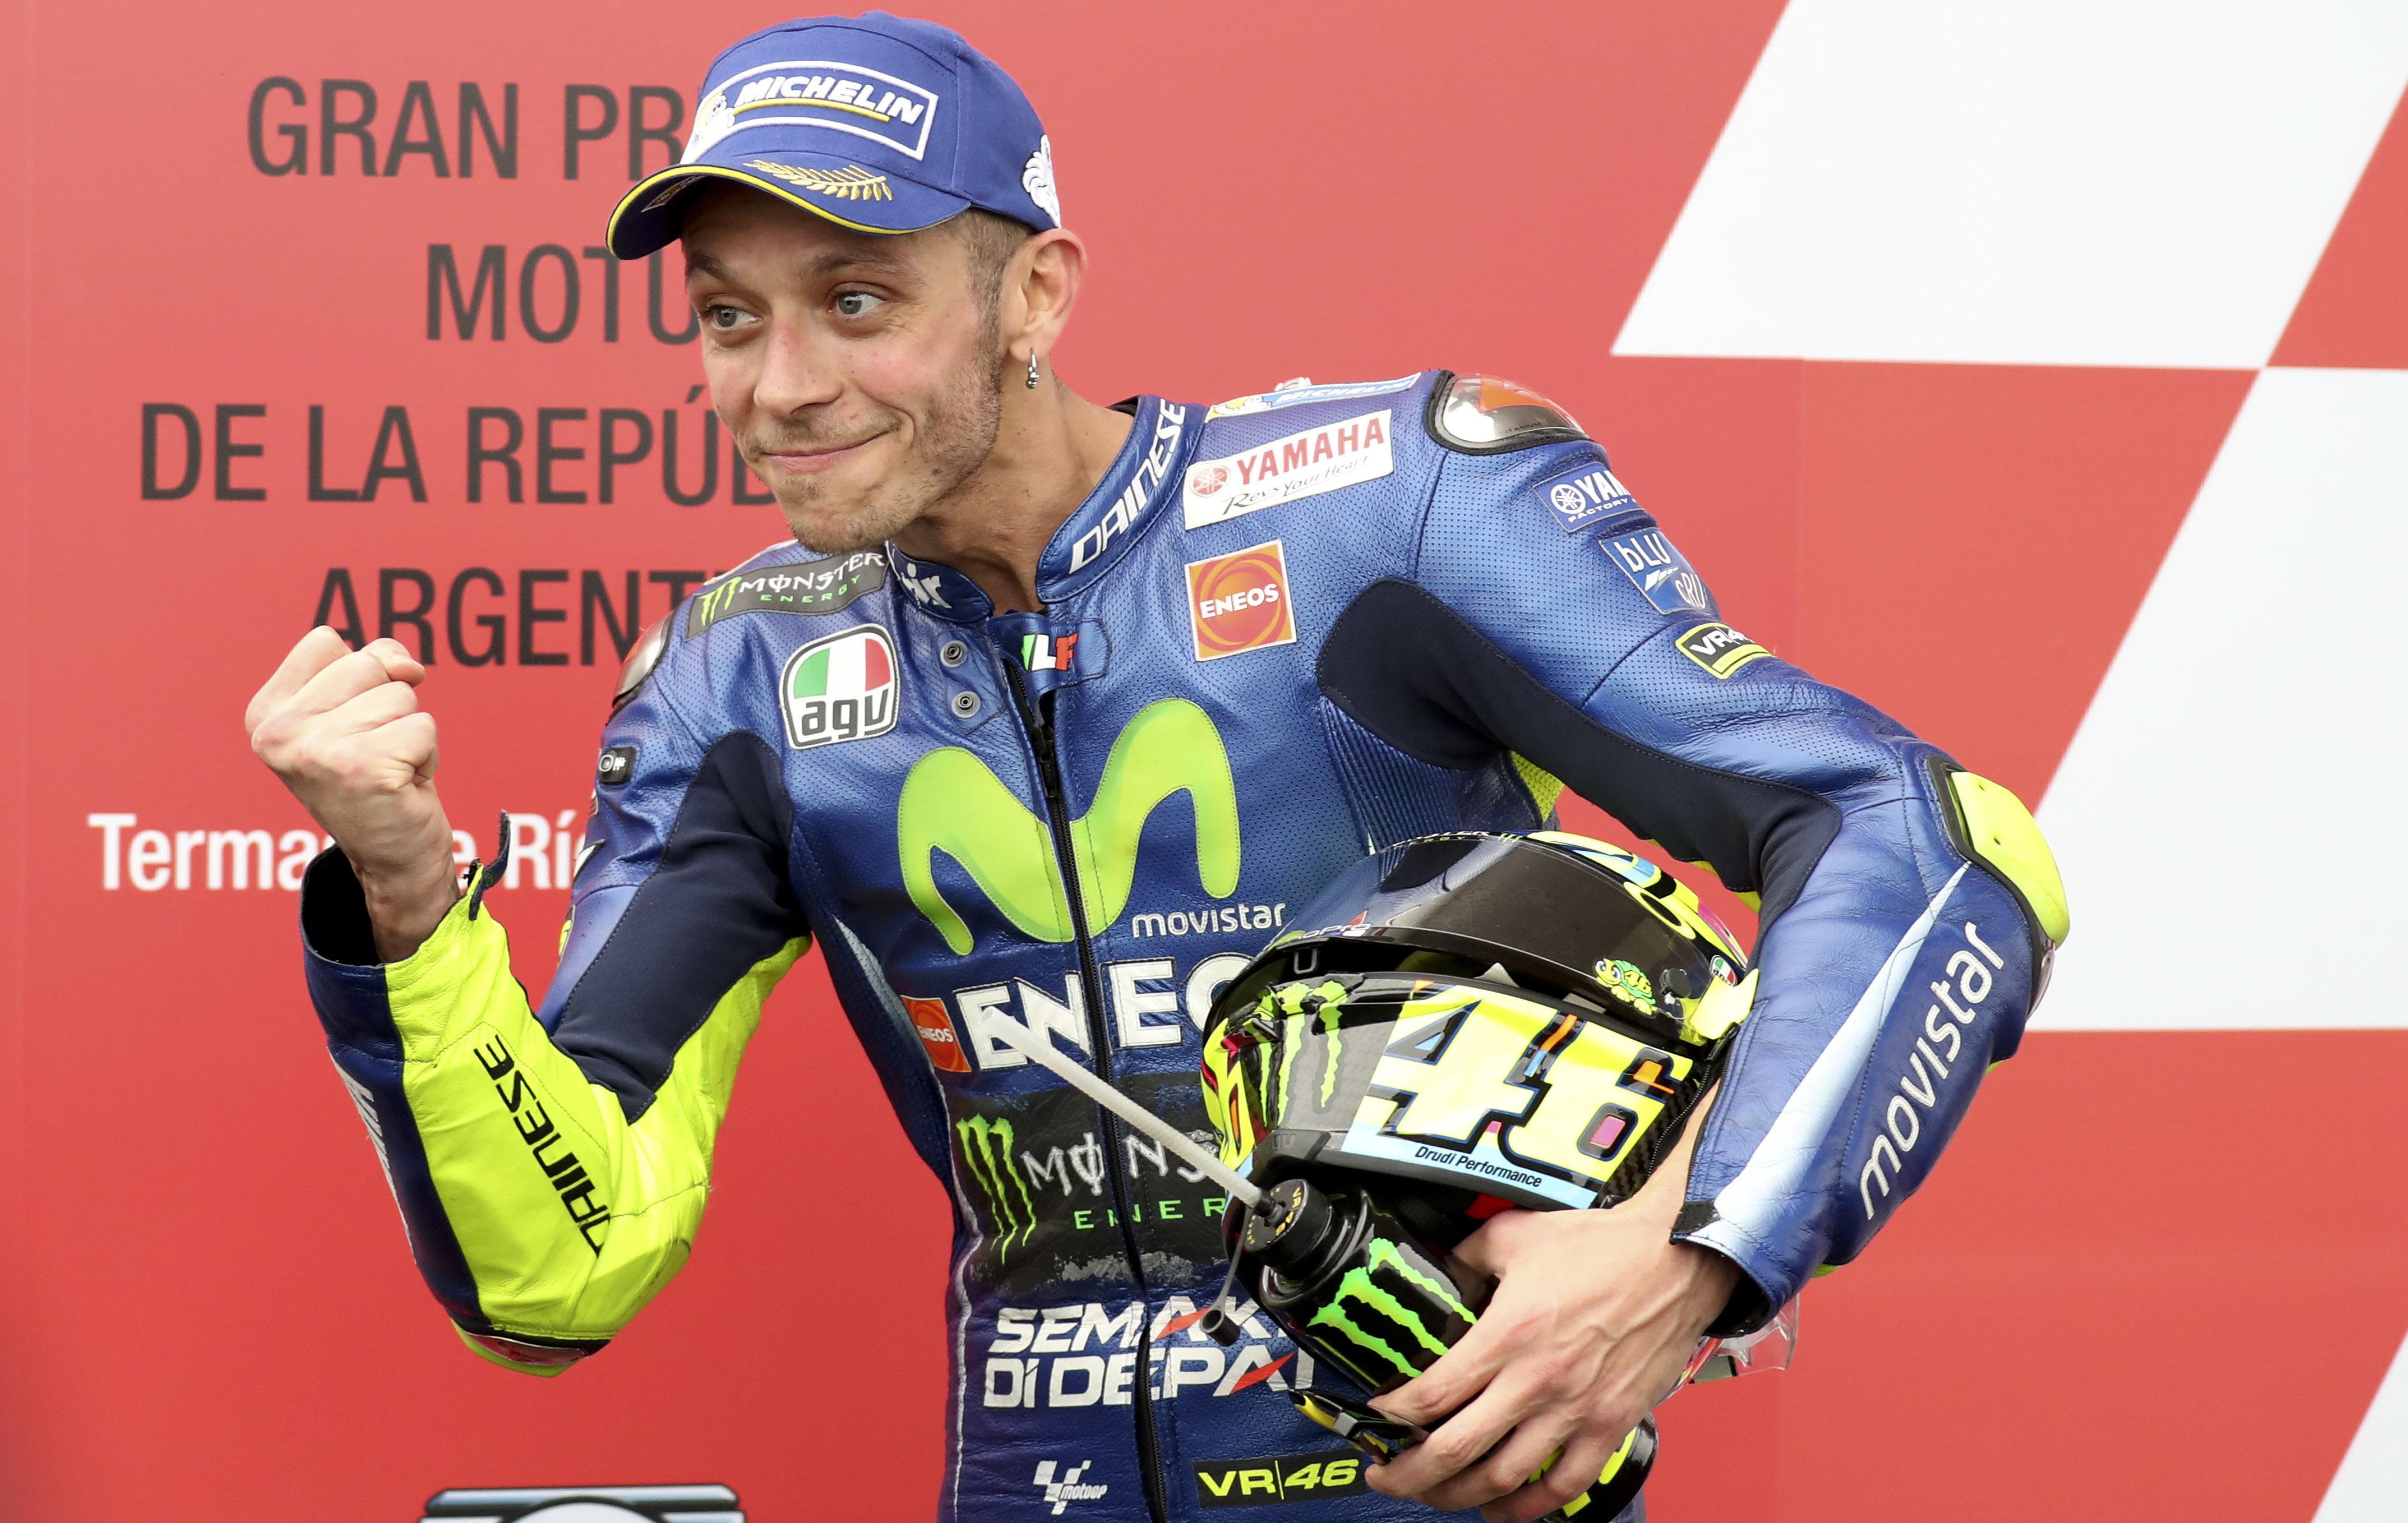 MotoGP legend Valentino Rossi once claimed he never wanted to get married